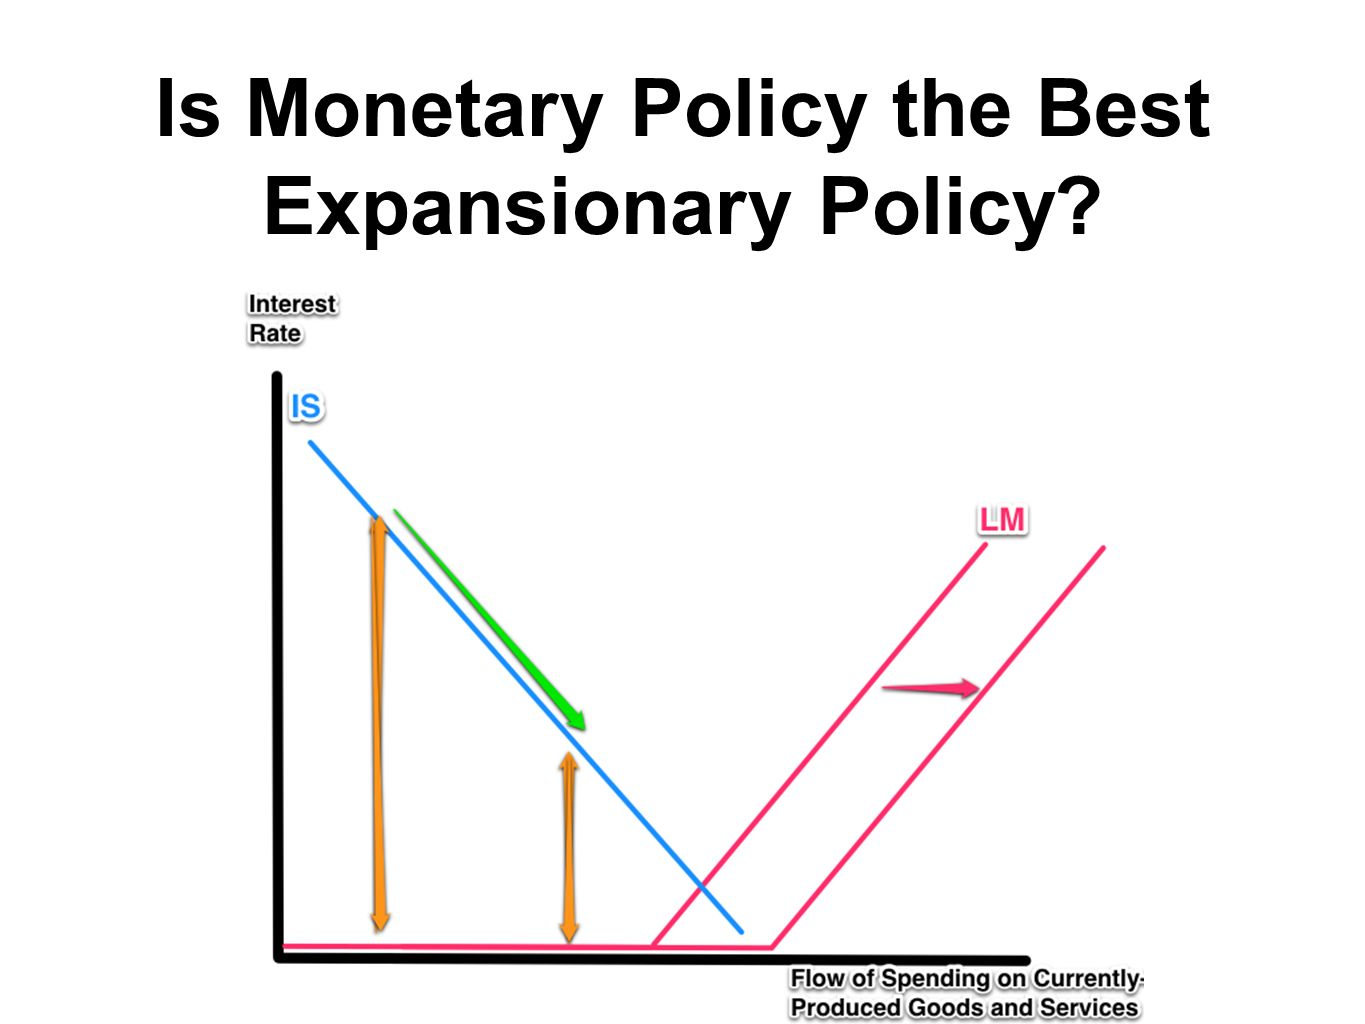 Is Monetary Policy the Best Expansionary Policy